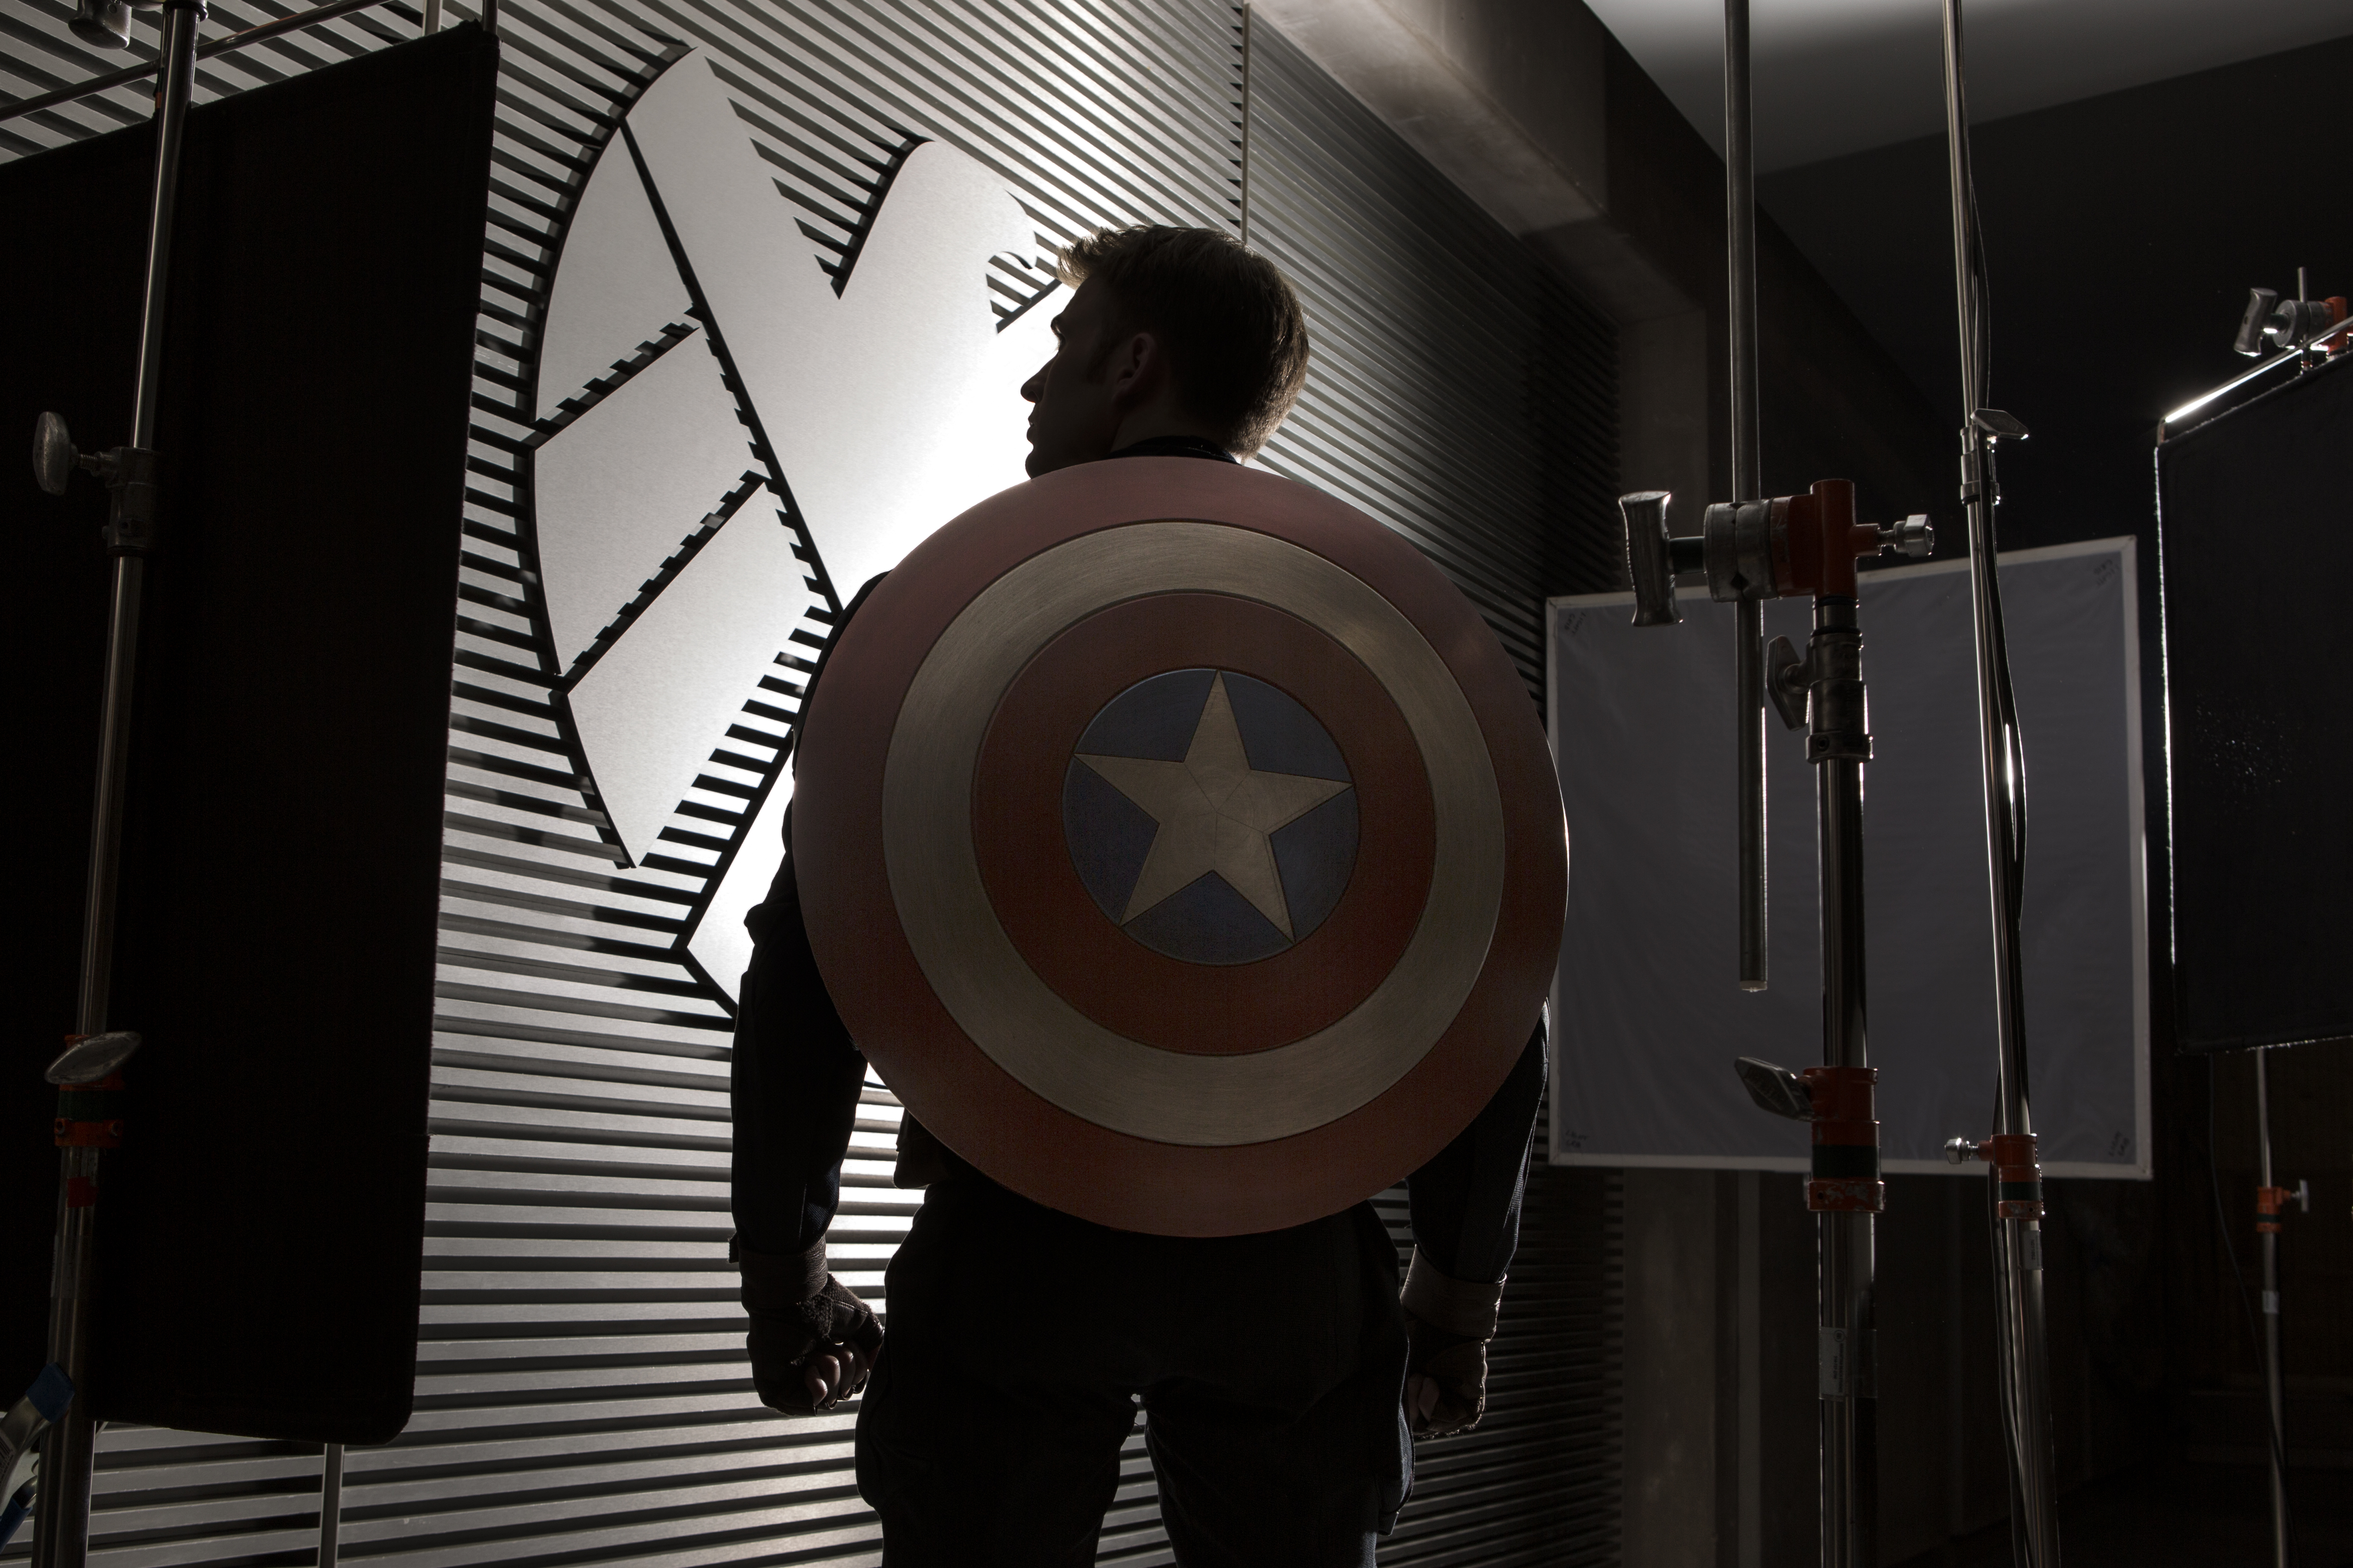 http://collider.com/wp-content/uploads/captain-america-2-winter-soldier-chris-evans.jpg